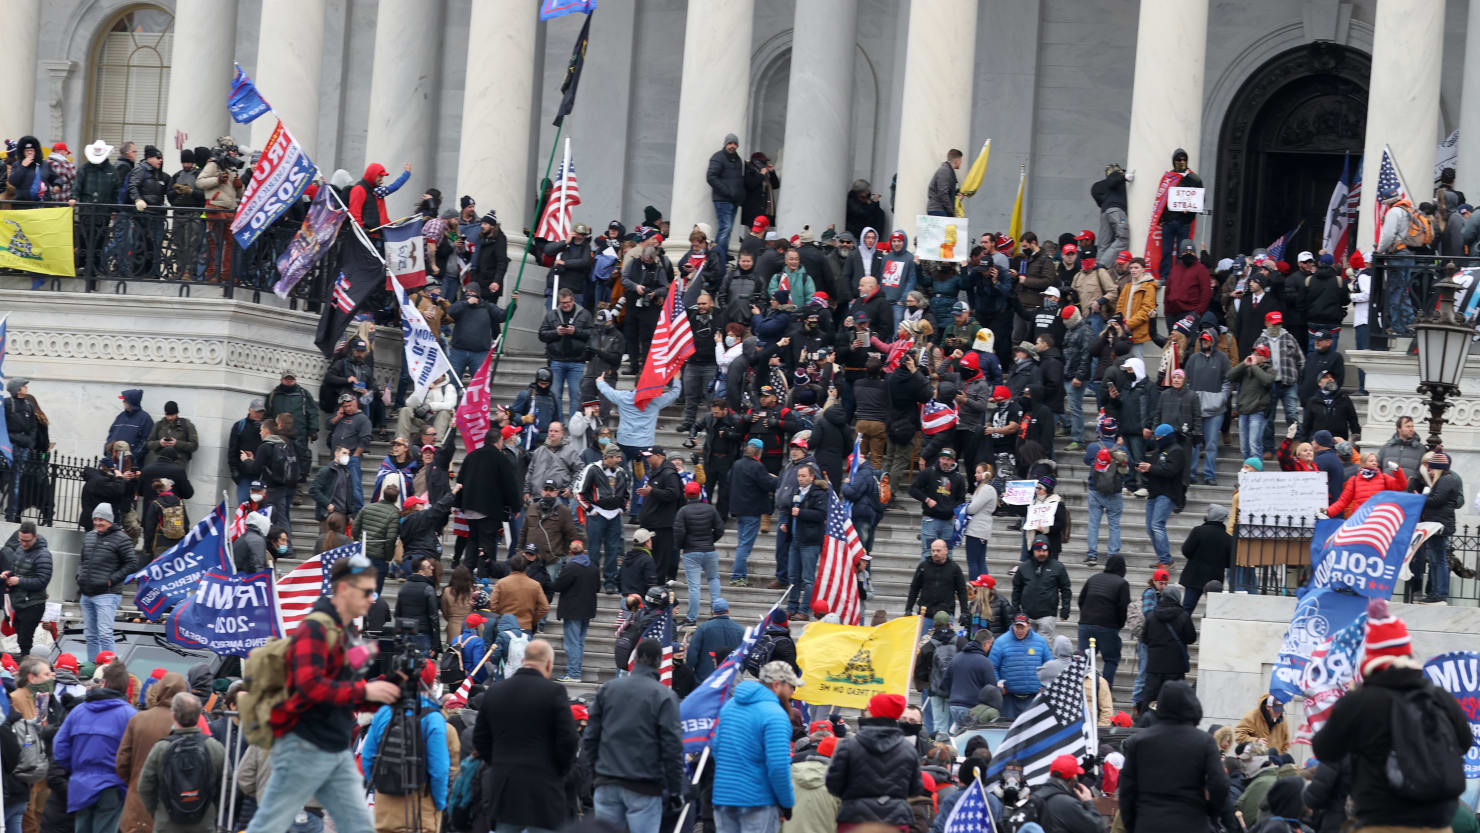 Capitol Rioter Outs Himself to FBI by 'Helping' Cops With Info